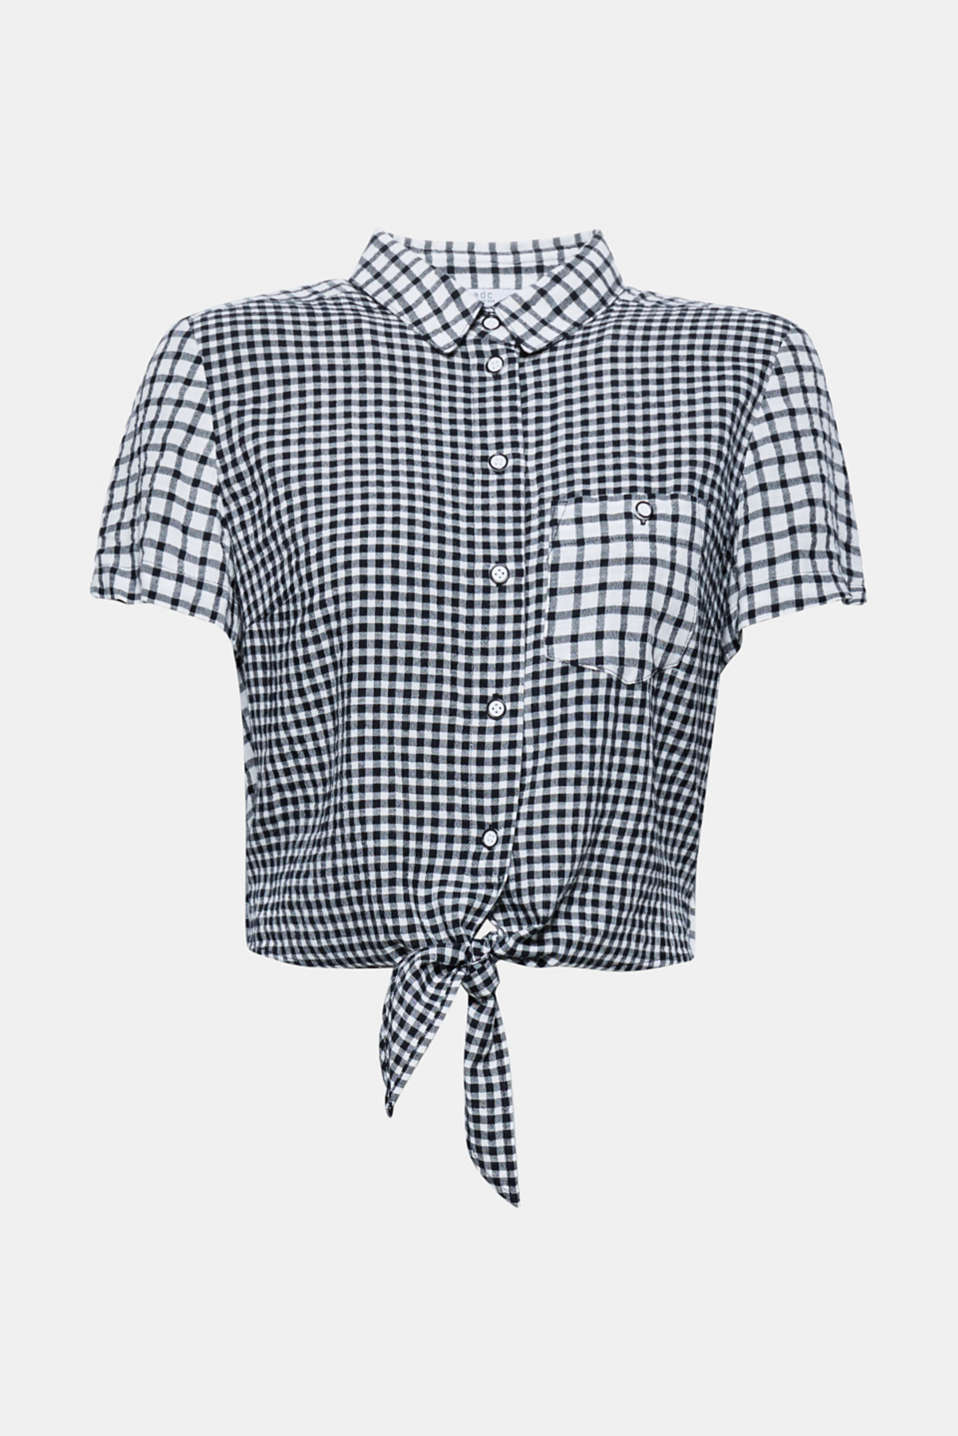 Don't tie yourself in knots! This woven blouse impresses with a cropped silhouette, varying check pattern and knot details.